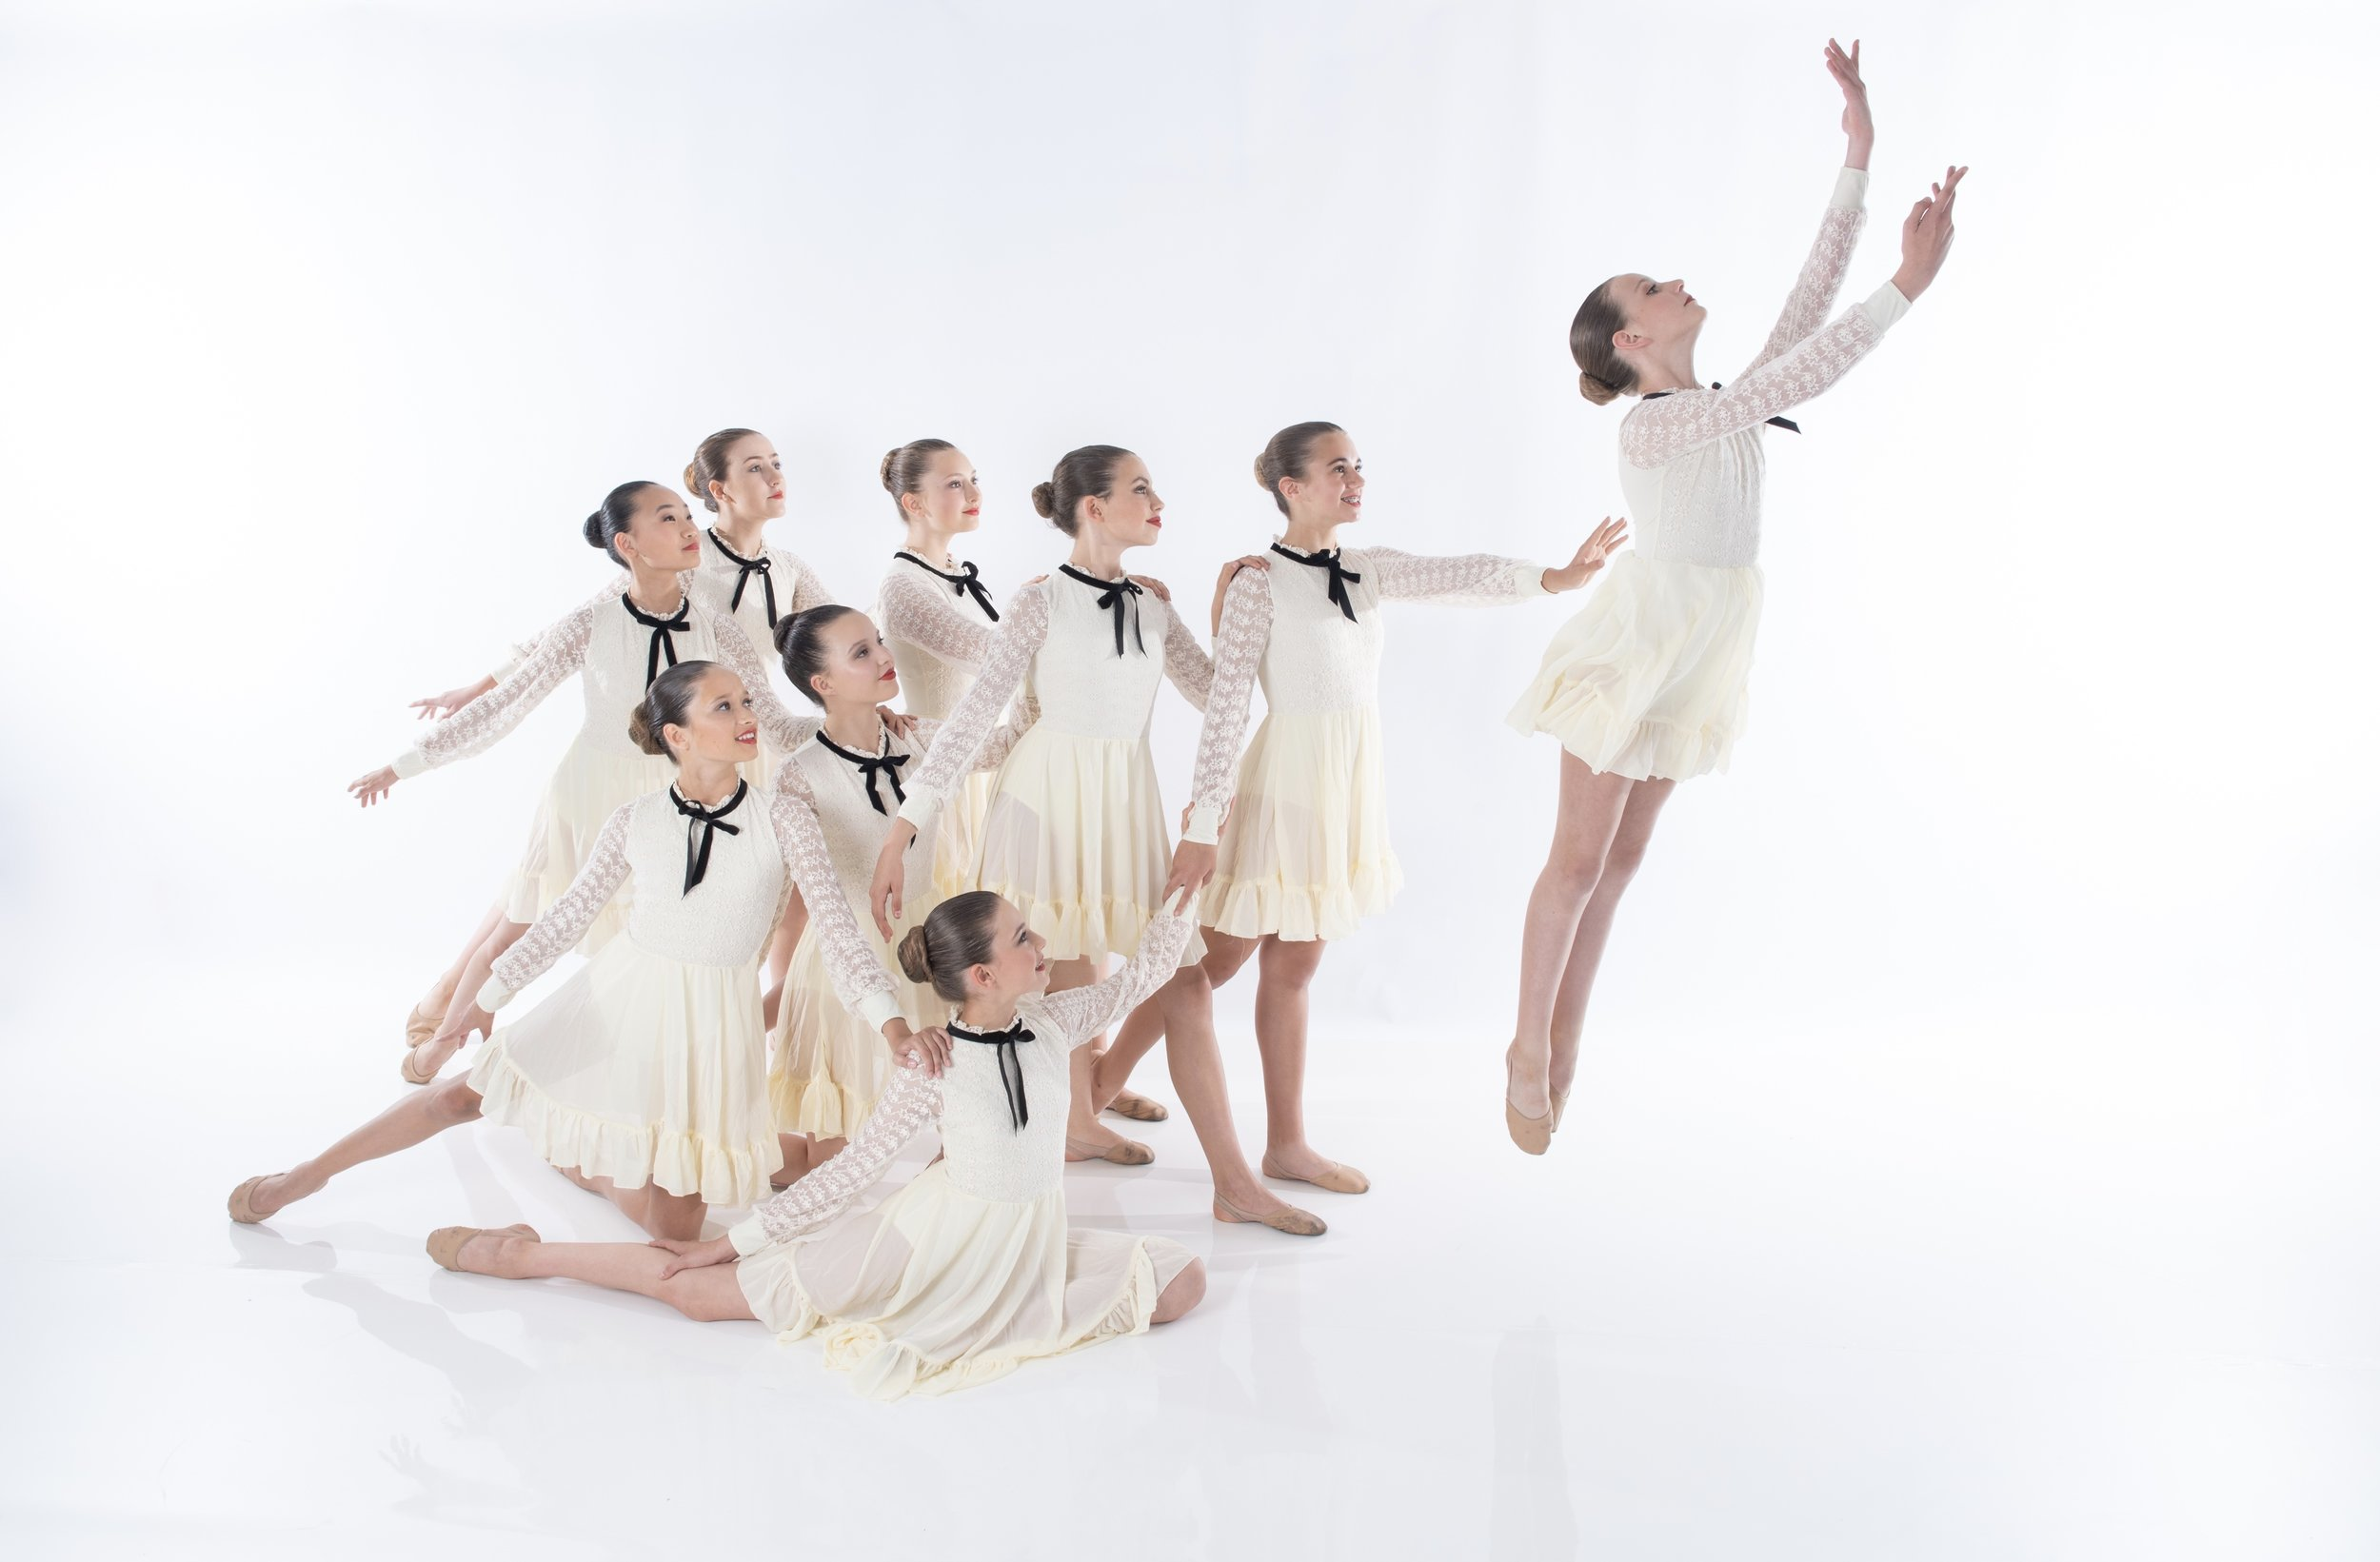 LYRICAL - Lyrical is One of the most gorgeous styles of dance, it is a fusion of ballet and jazz techniques. Dancers will learn to use motion and emotion to really interpret and showcase the meaning of the music.